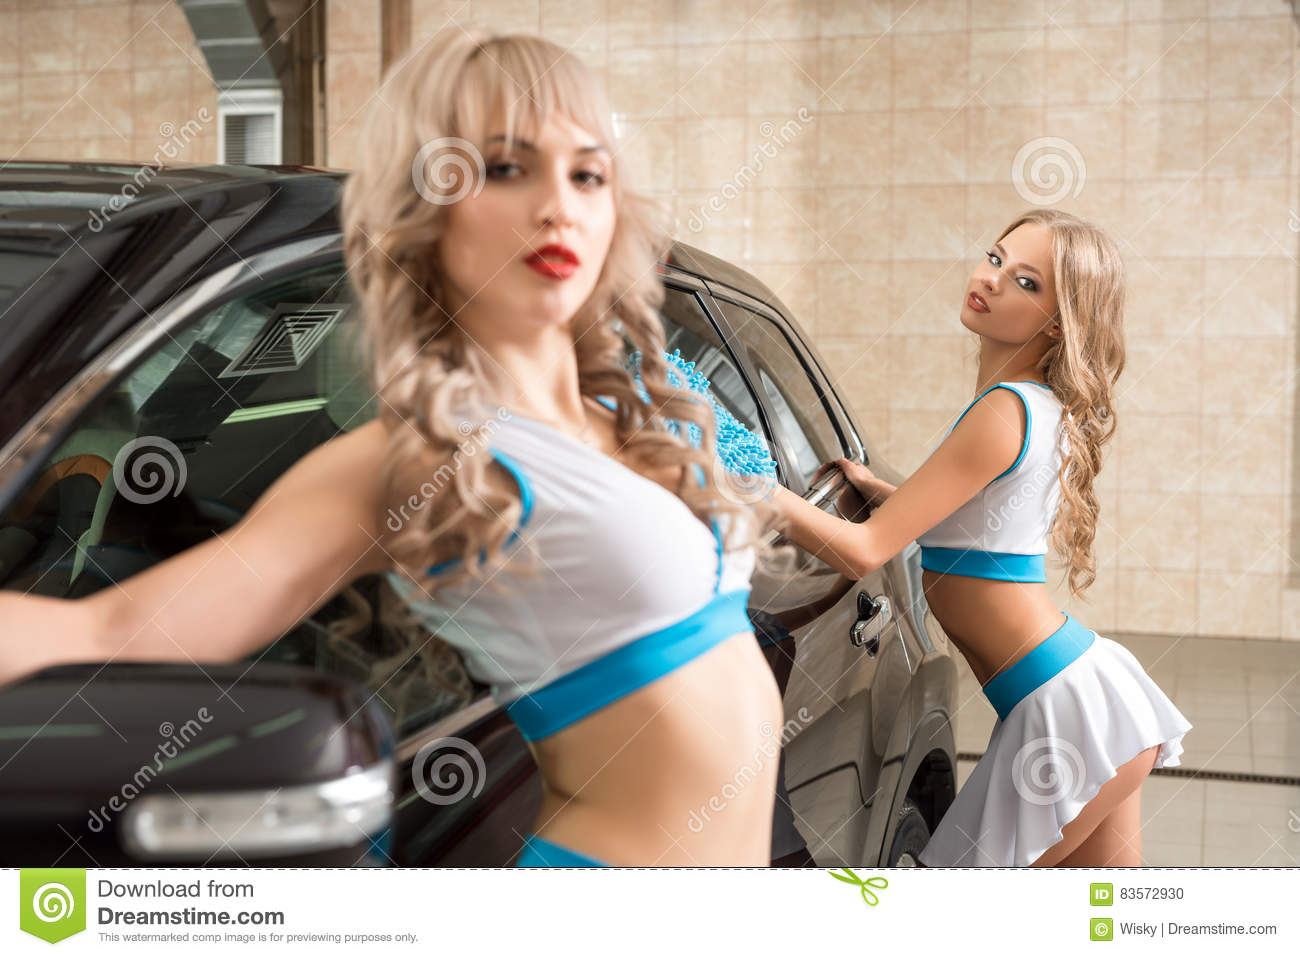 girls in formula one style posing at carwash